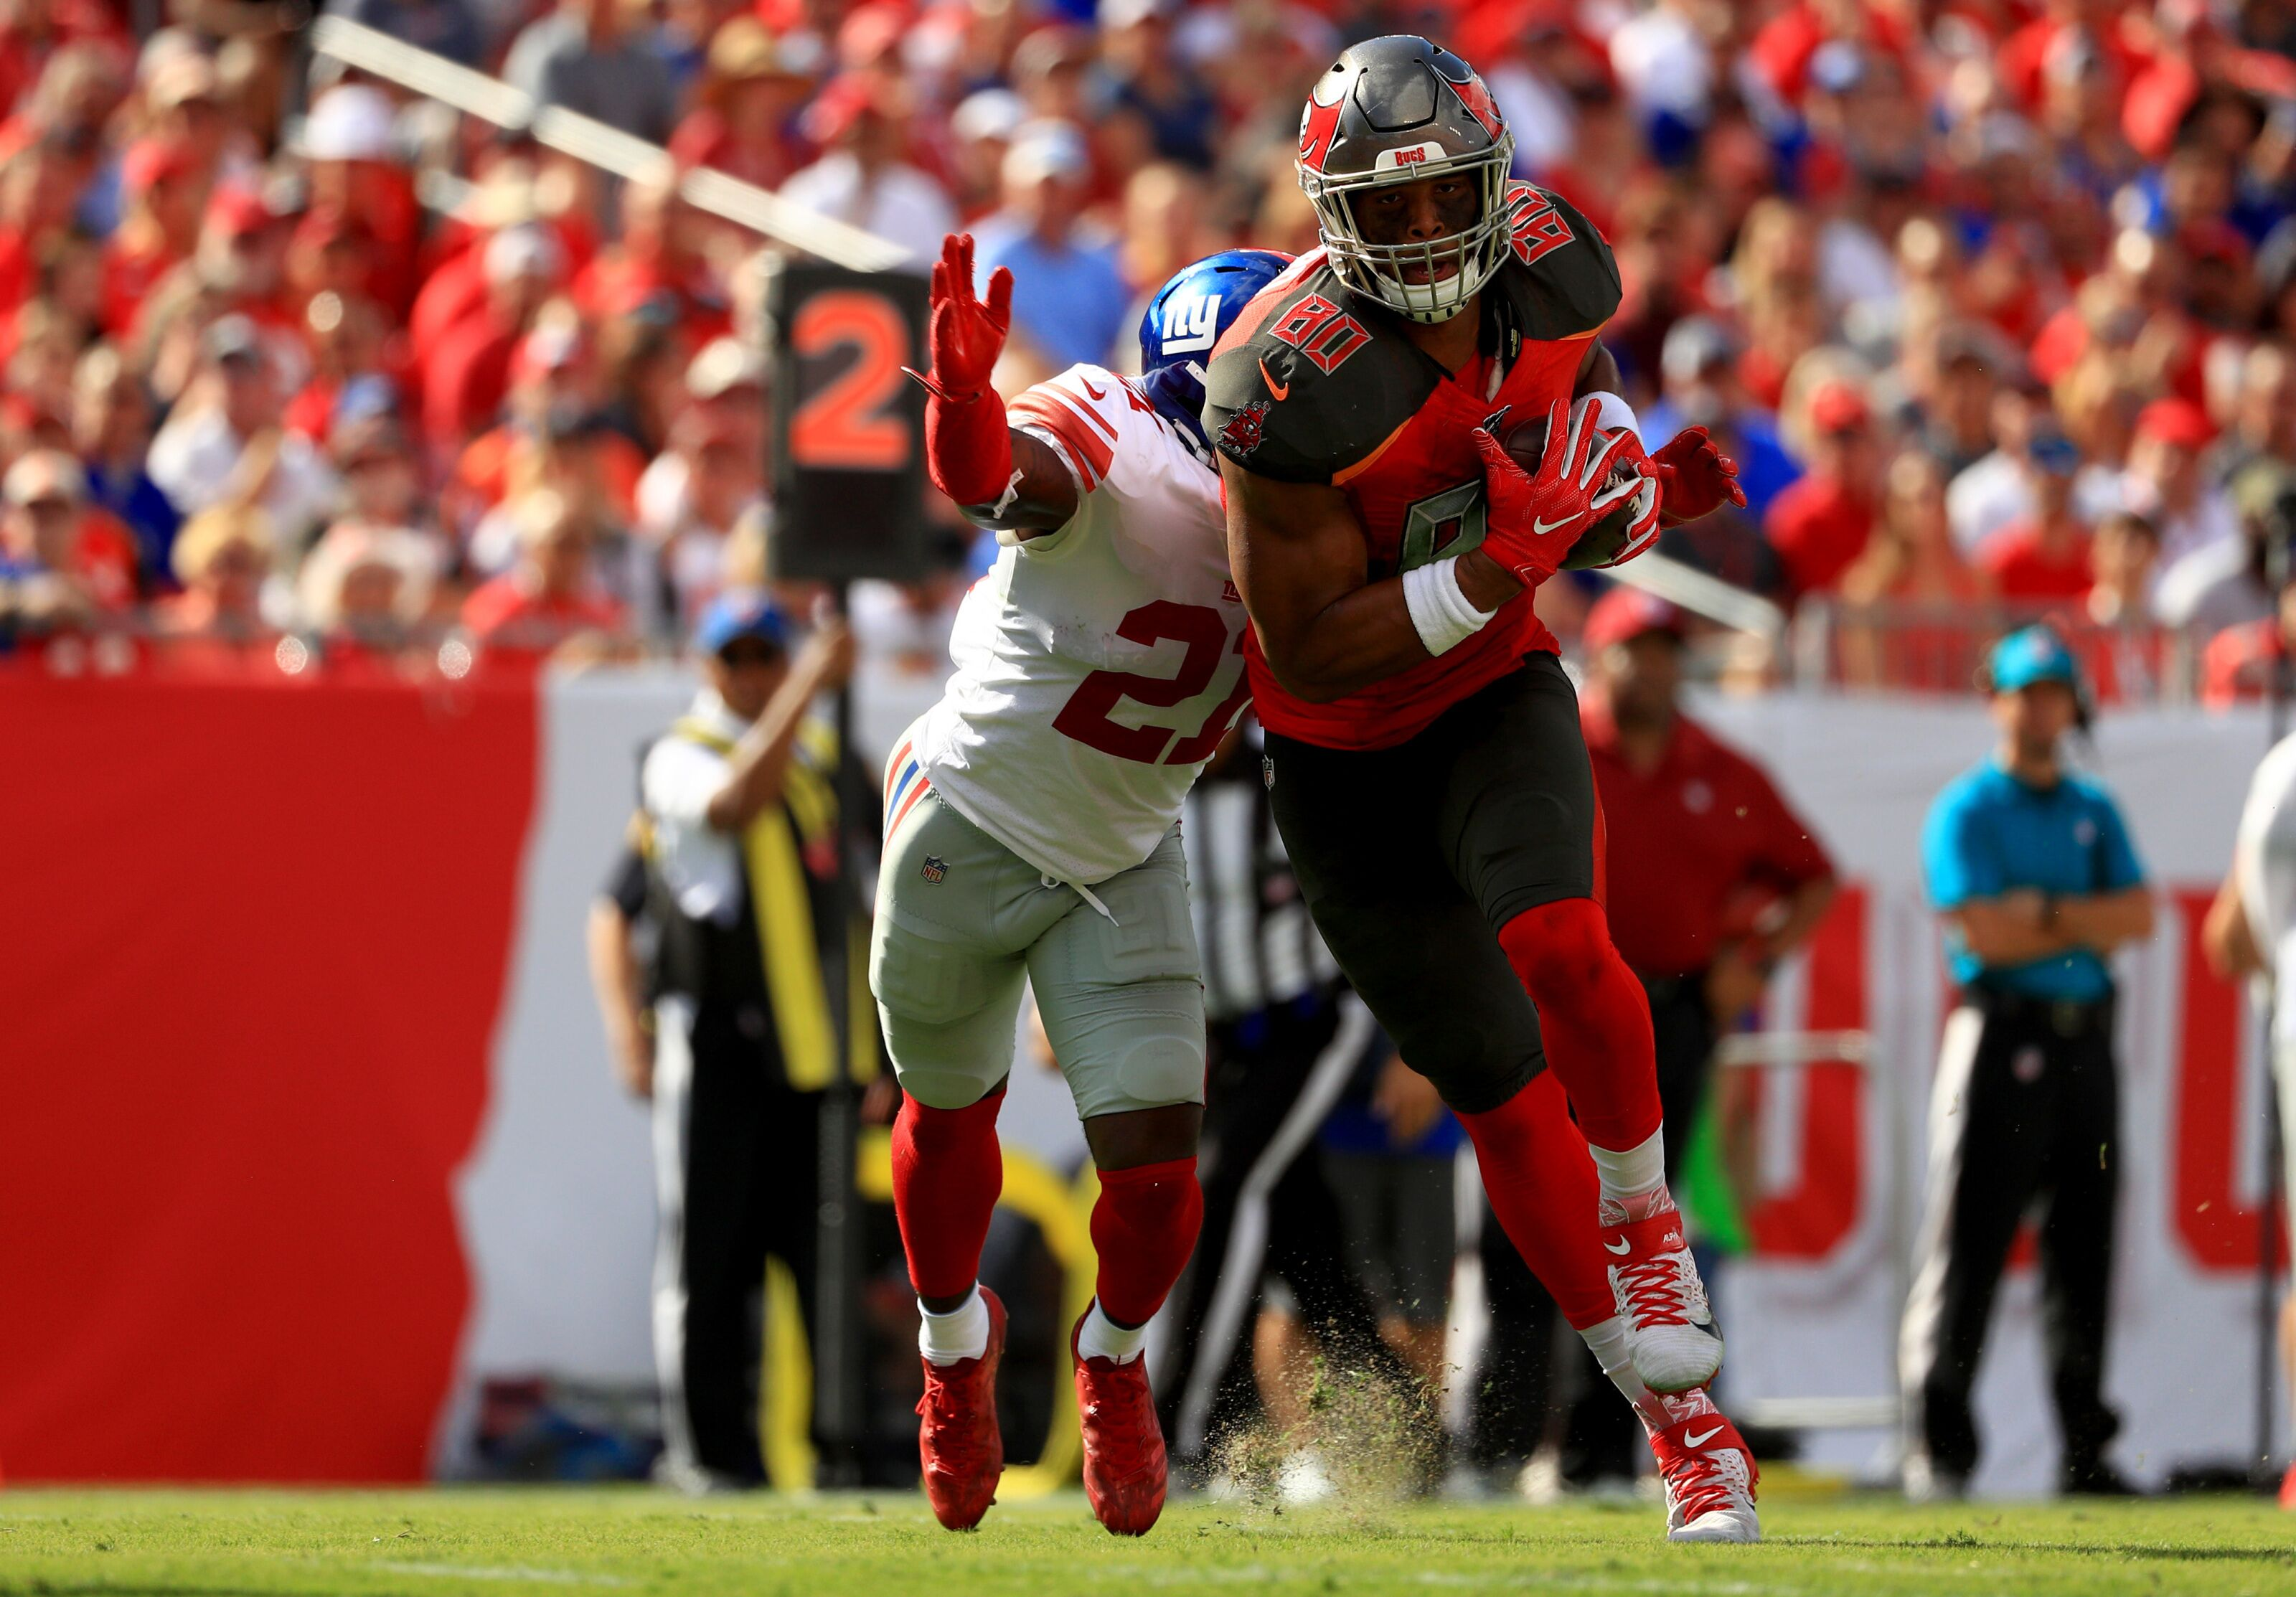 Buccaneers should consider moving O.J. Howard to wide receiver